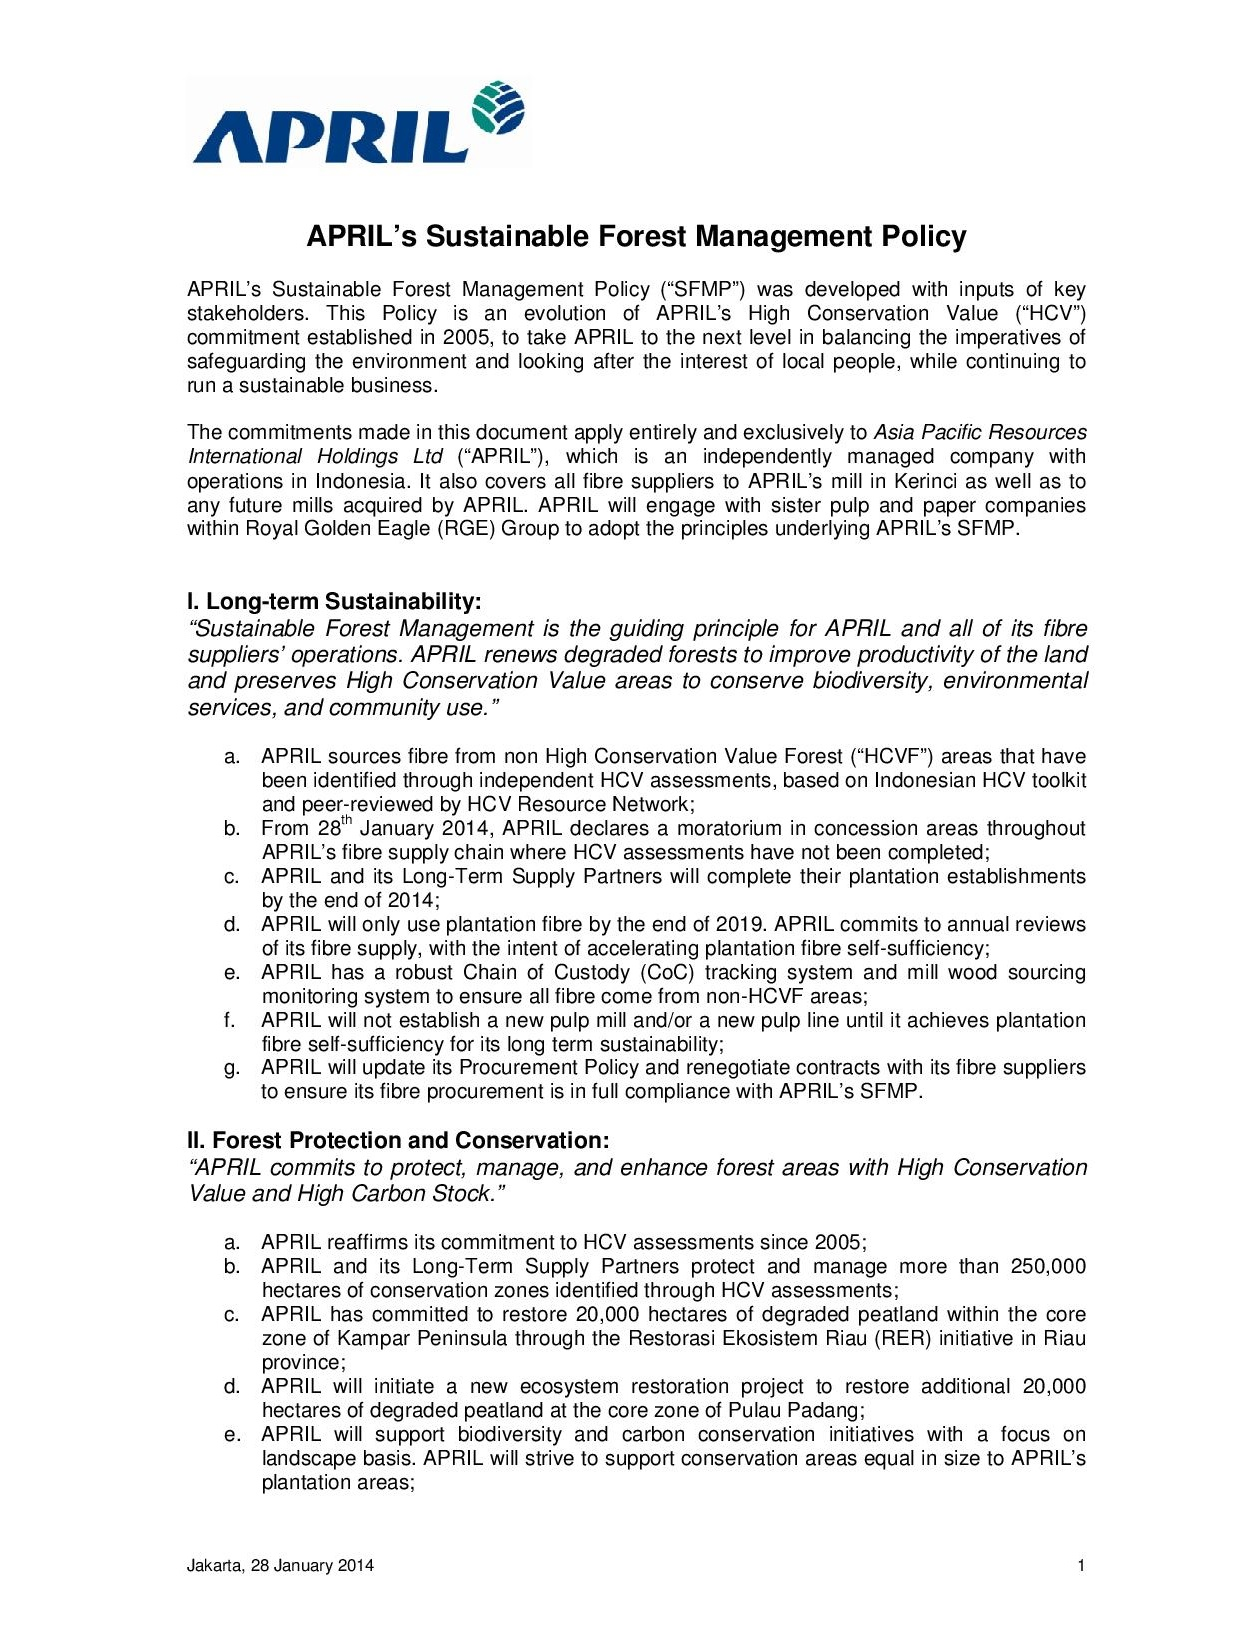 Sustainable Forest Managemet Policy - Part 1